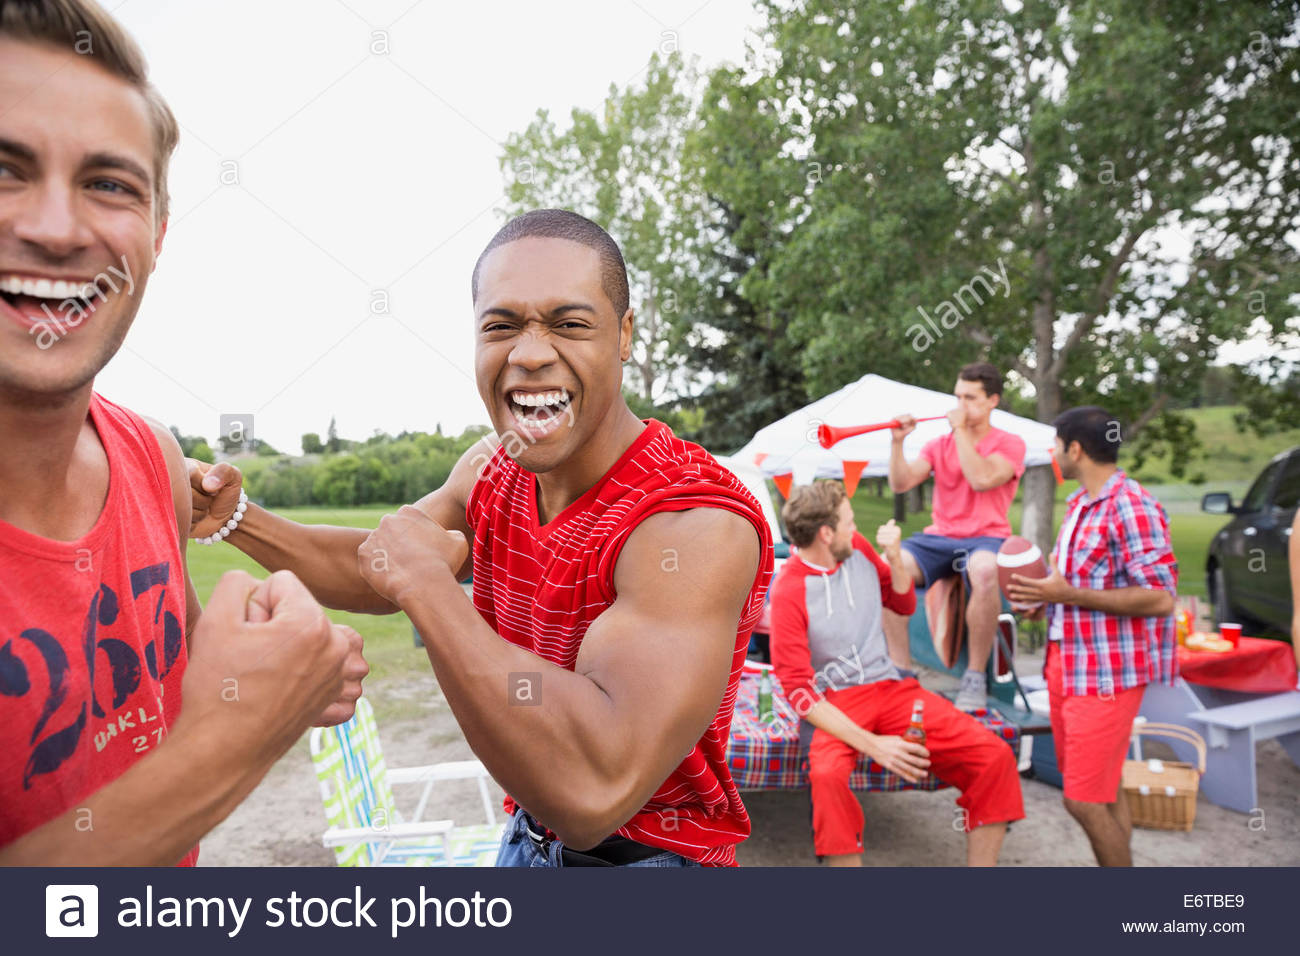 Men laughing at tailgate barbecue in field - Stock Image